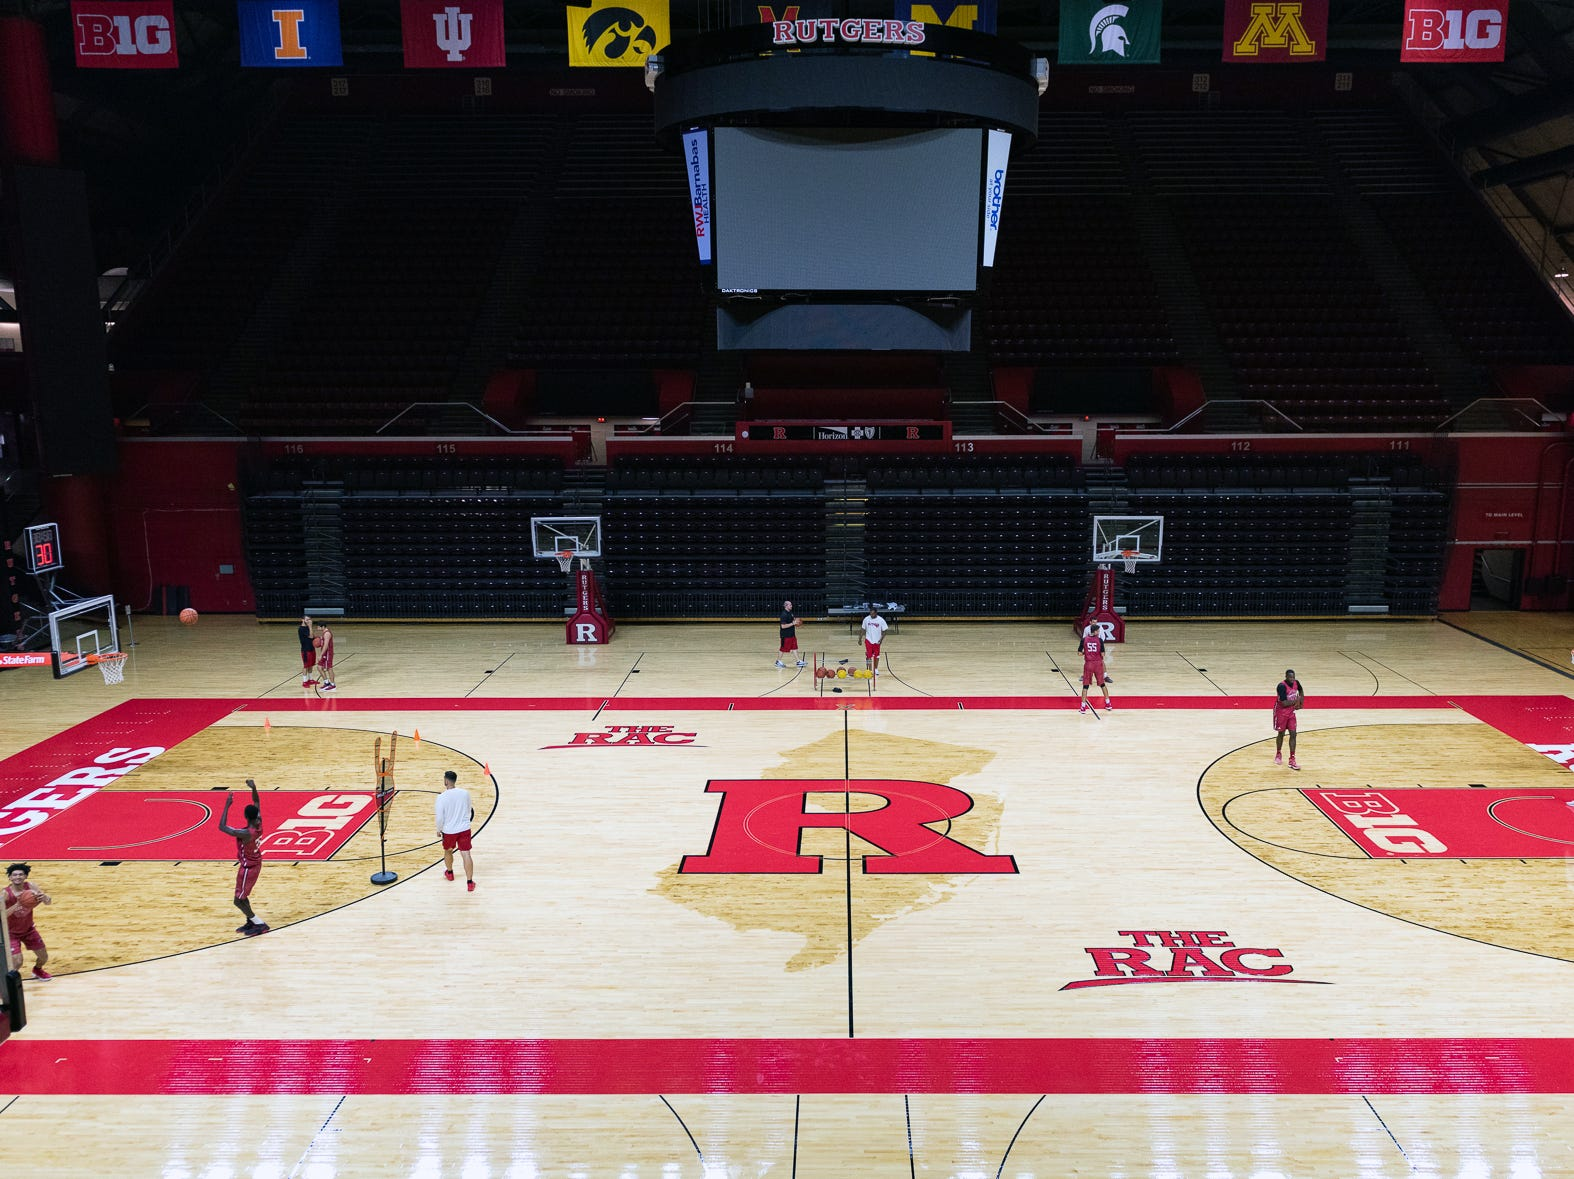 Rutgers Men's Basketball summer practice in preparation for the 2018-19 basketball season takes place on Rutgers Athletic Center's new court.